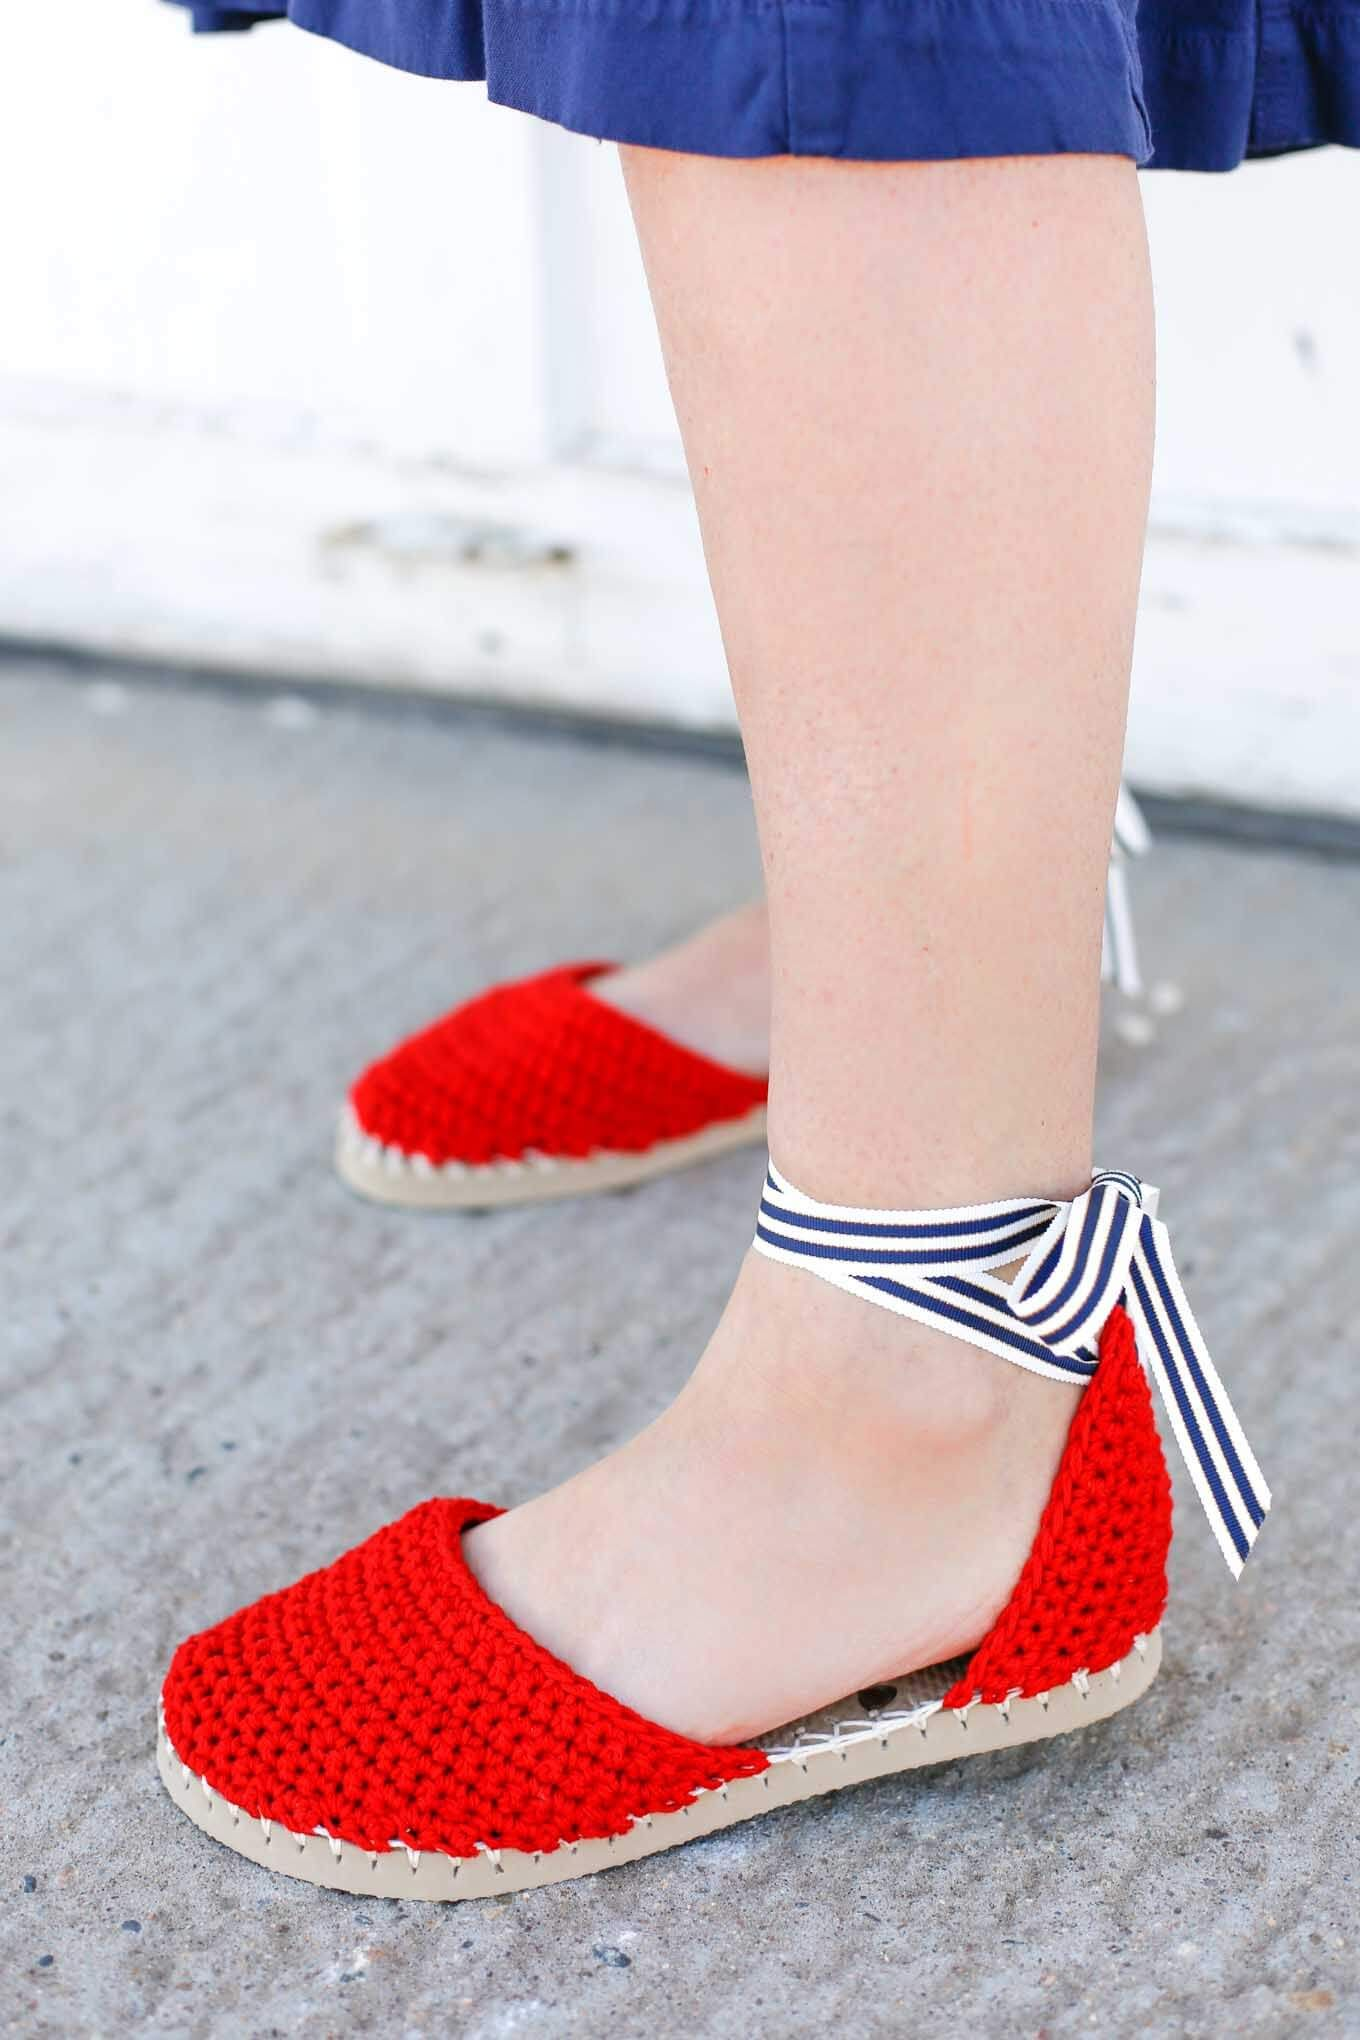 aba3047001de Learn how to make crochet espadrilles with flip flop soles in this free  pattern and tutorial from Make and Do Crew! These crochet sandals feature  Lion Brand ...